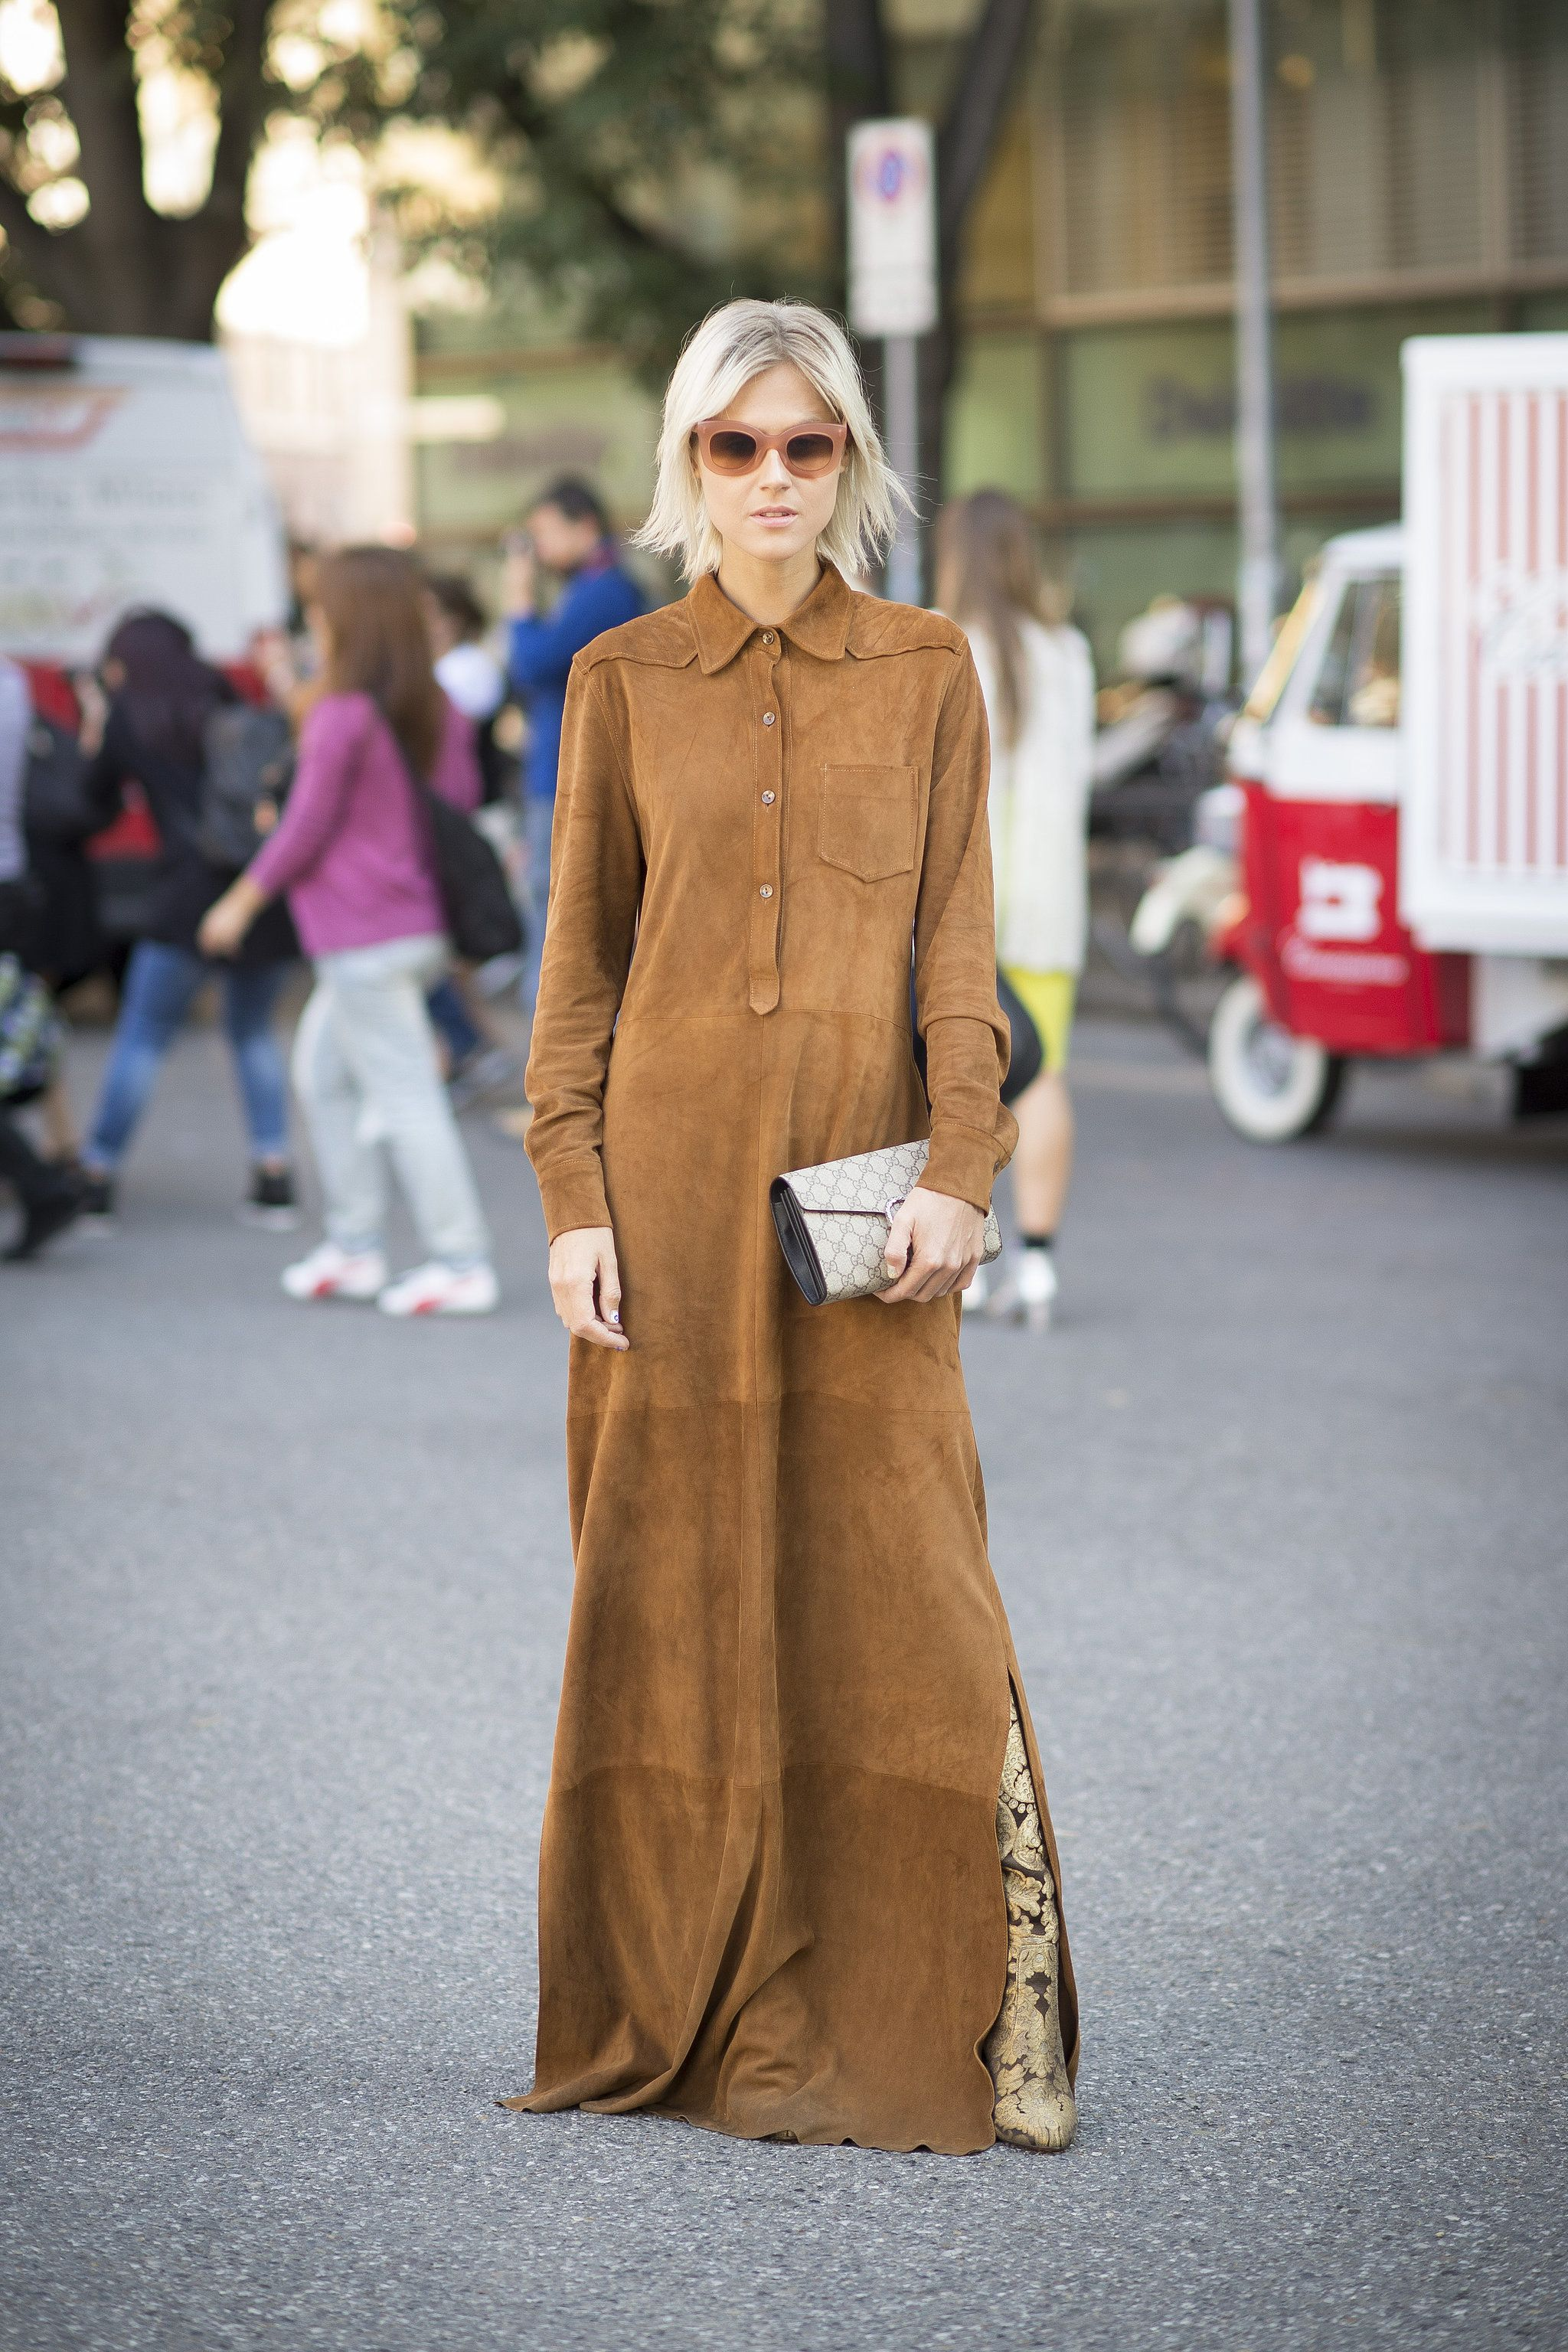 Lange Avondjurken Street Style Bei Der Fashion Week In Mailand Fashion